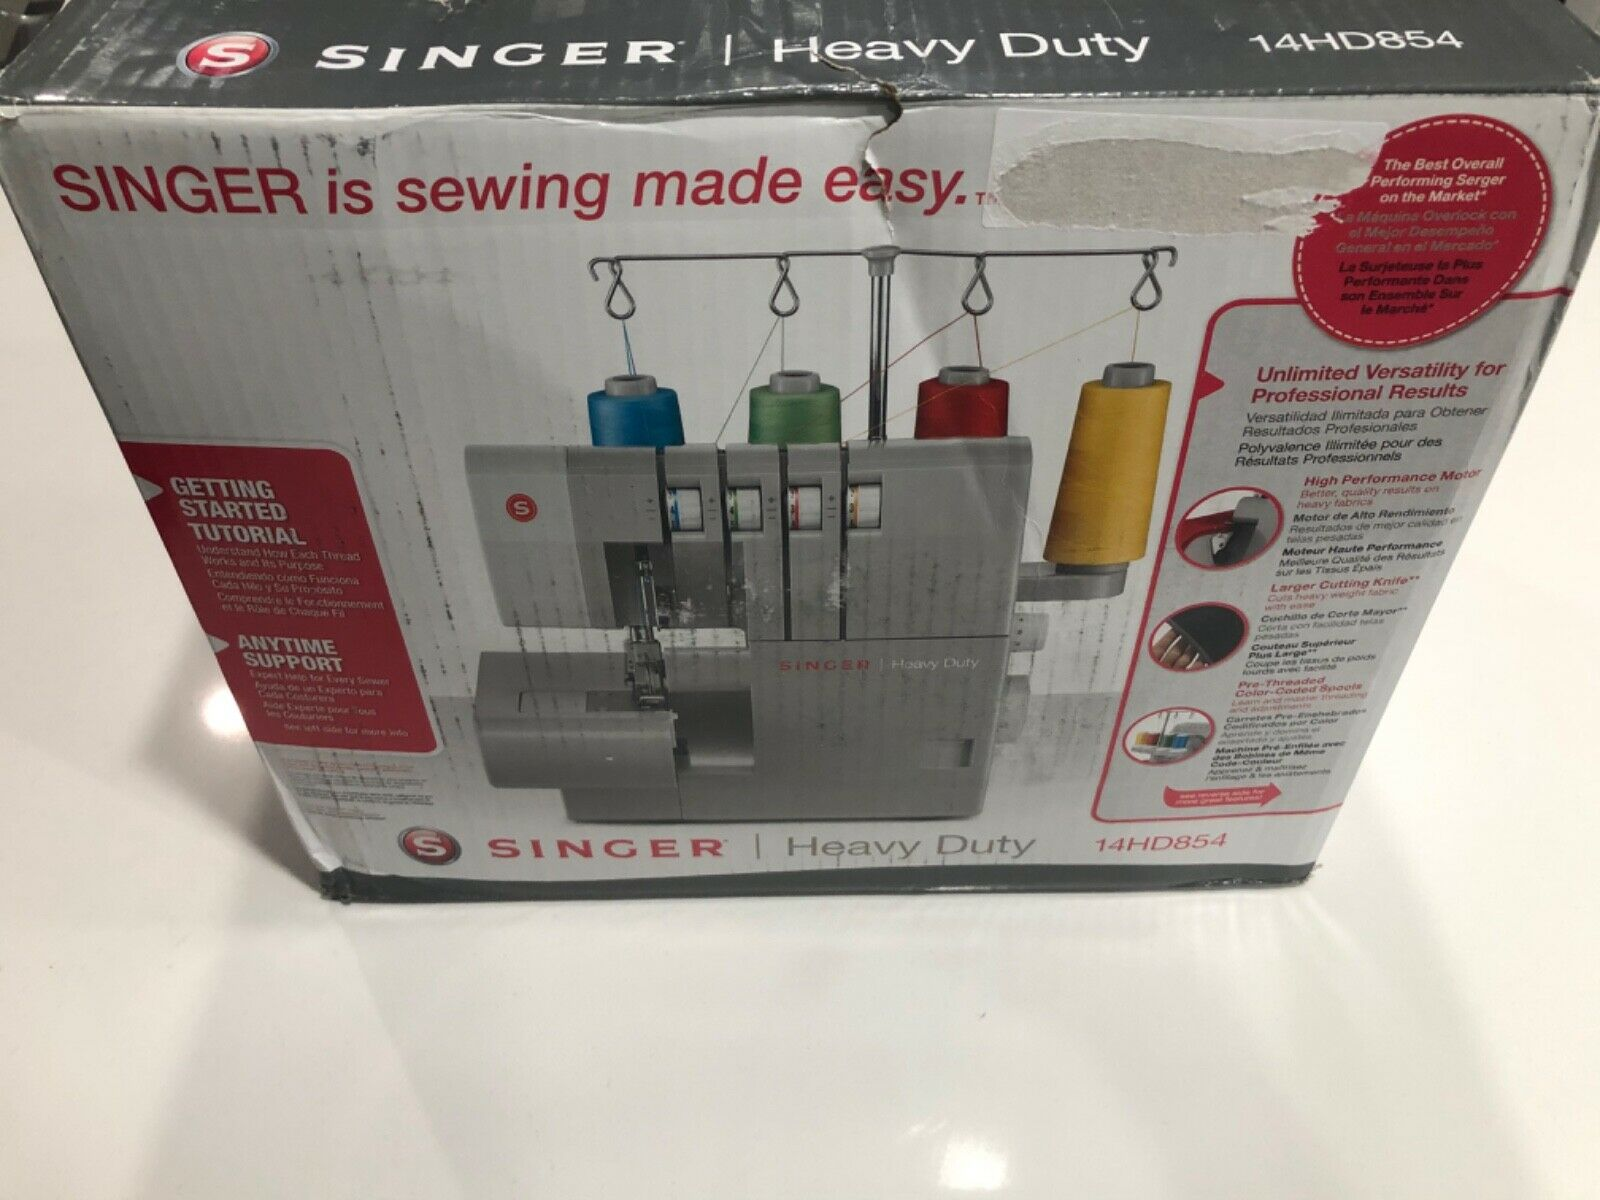 Singer 14HD854 Overlock Serger Machine.